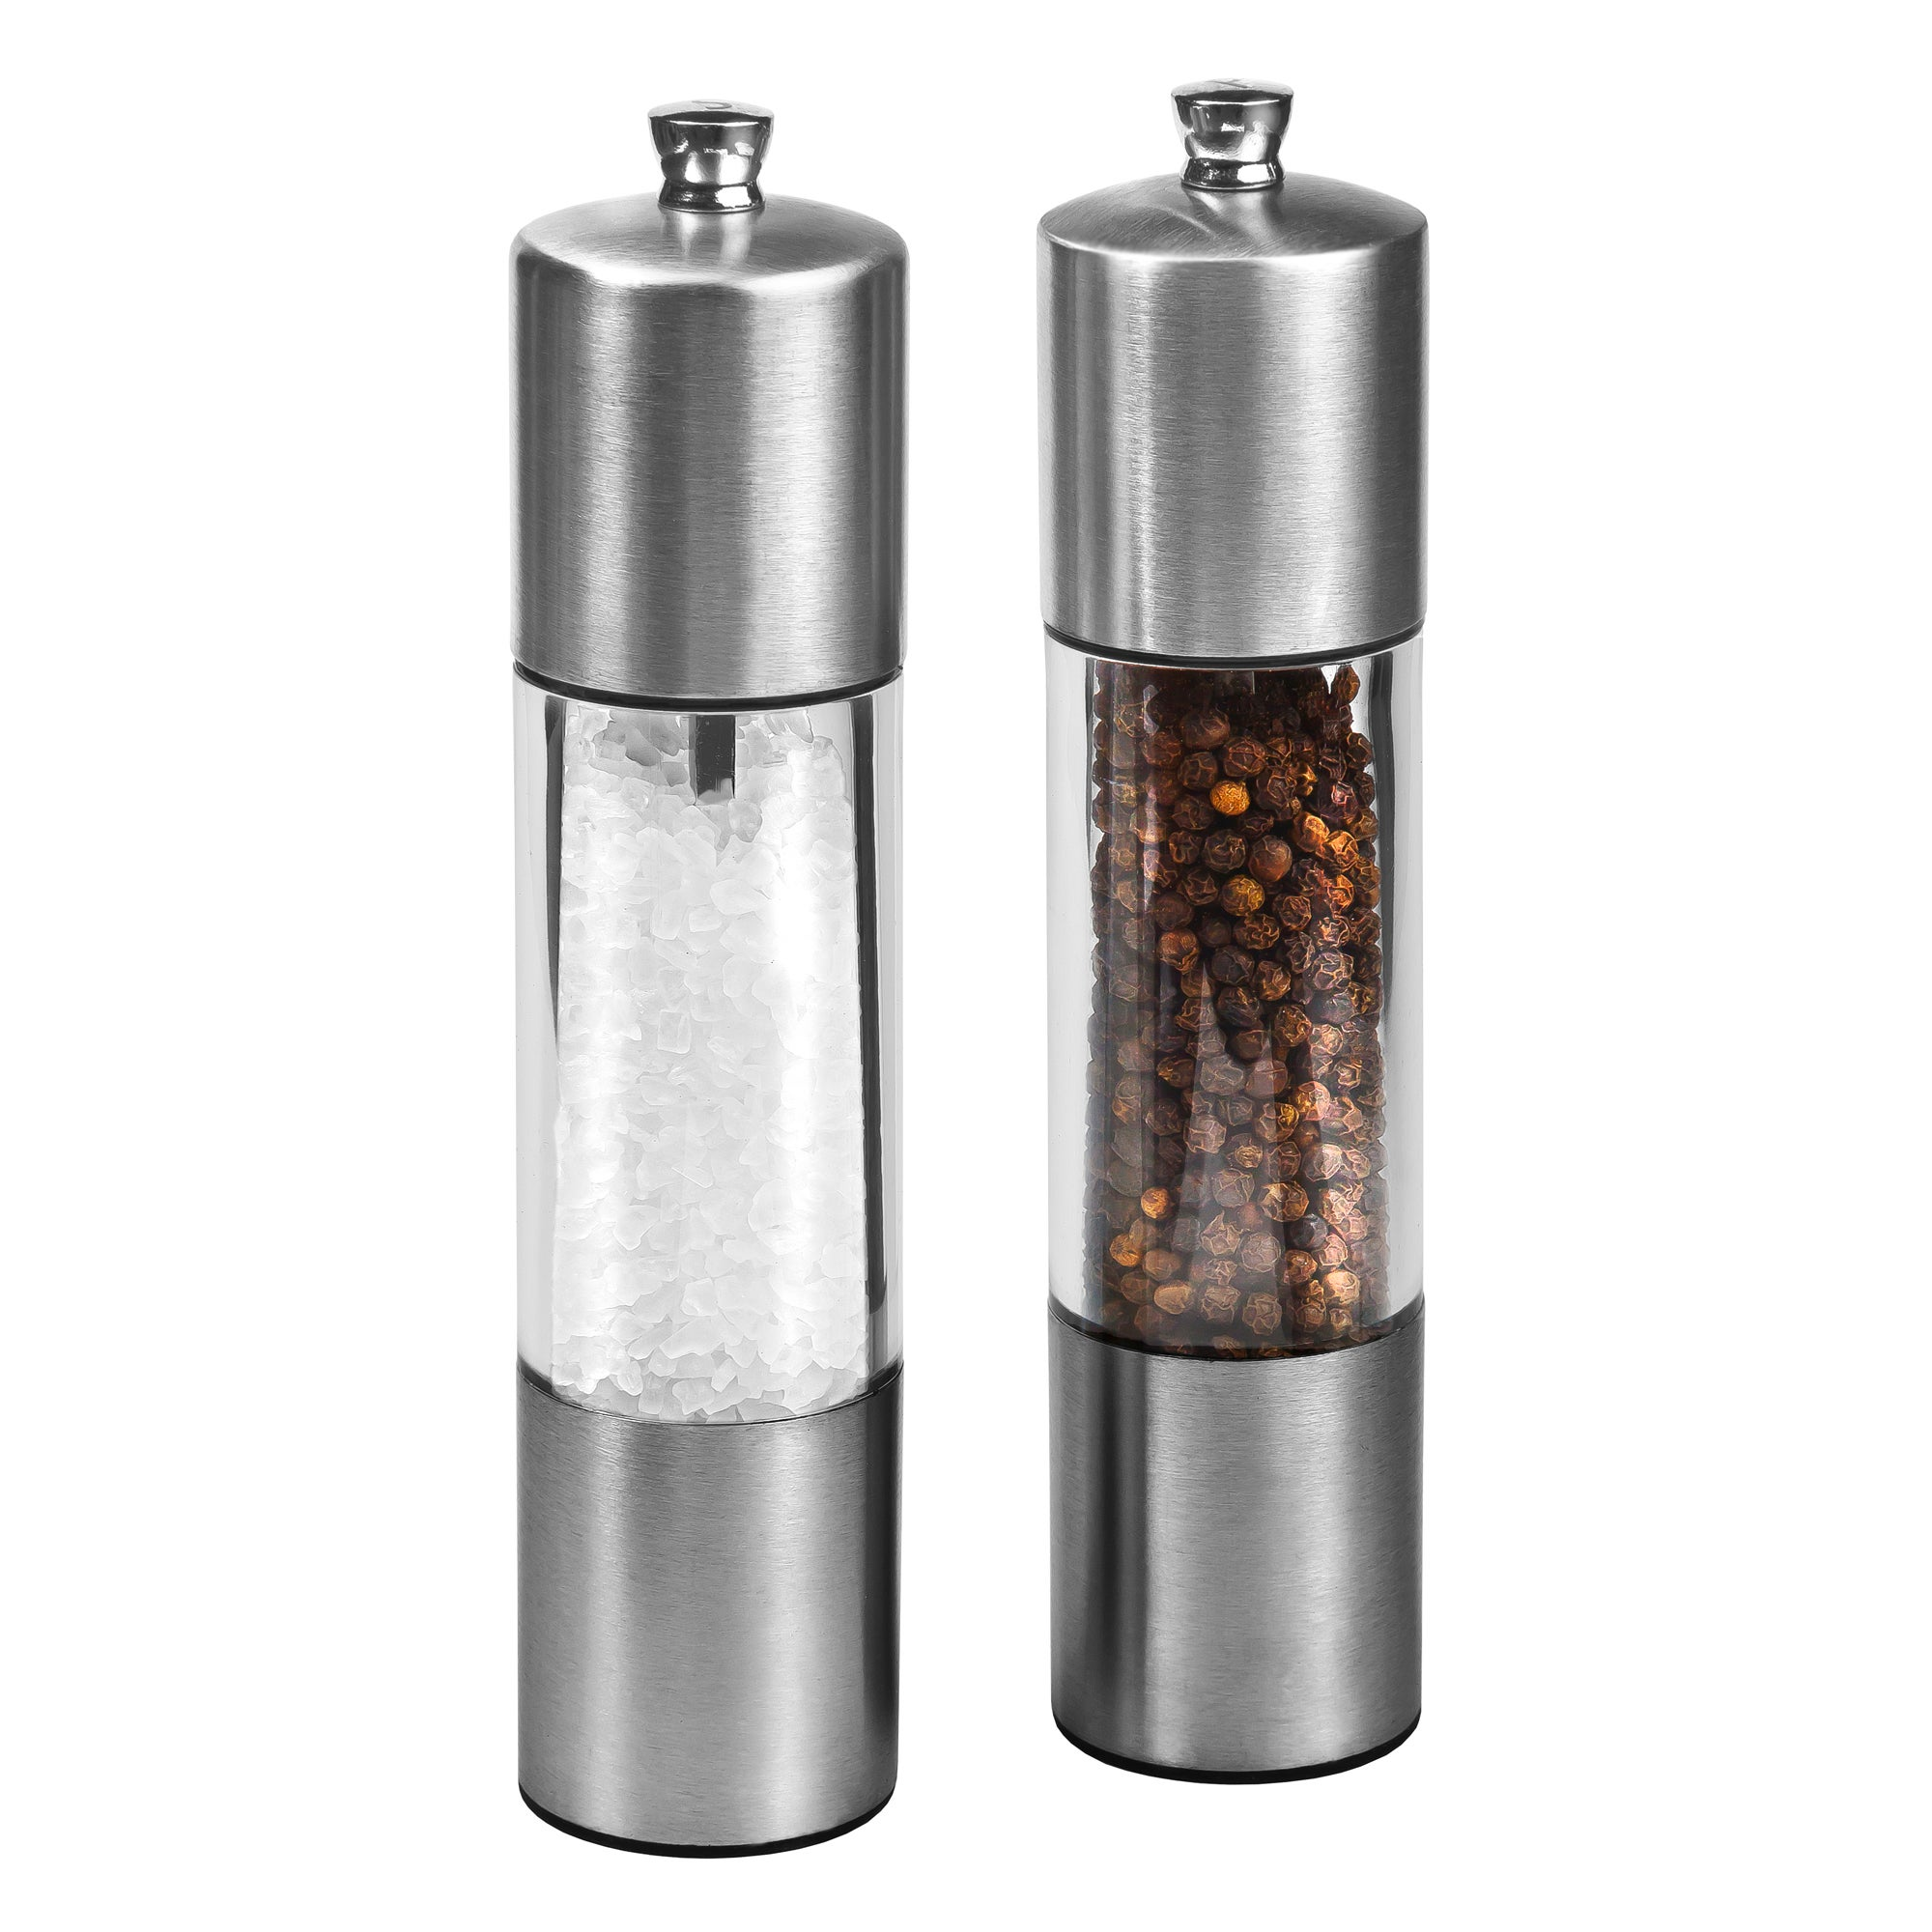 Cole & Mason Monaco Everyday Salt and Pepper Mill Gift Set